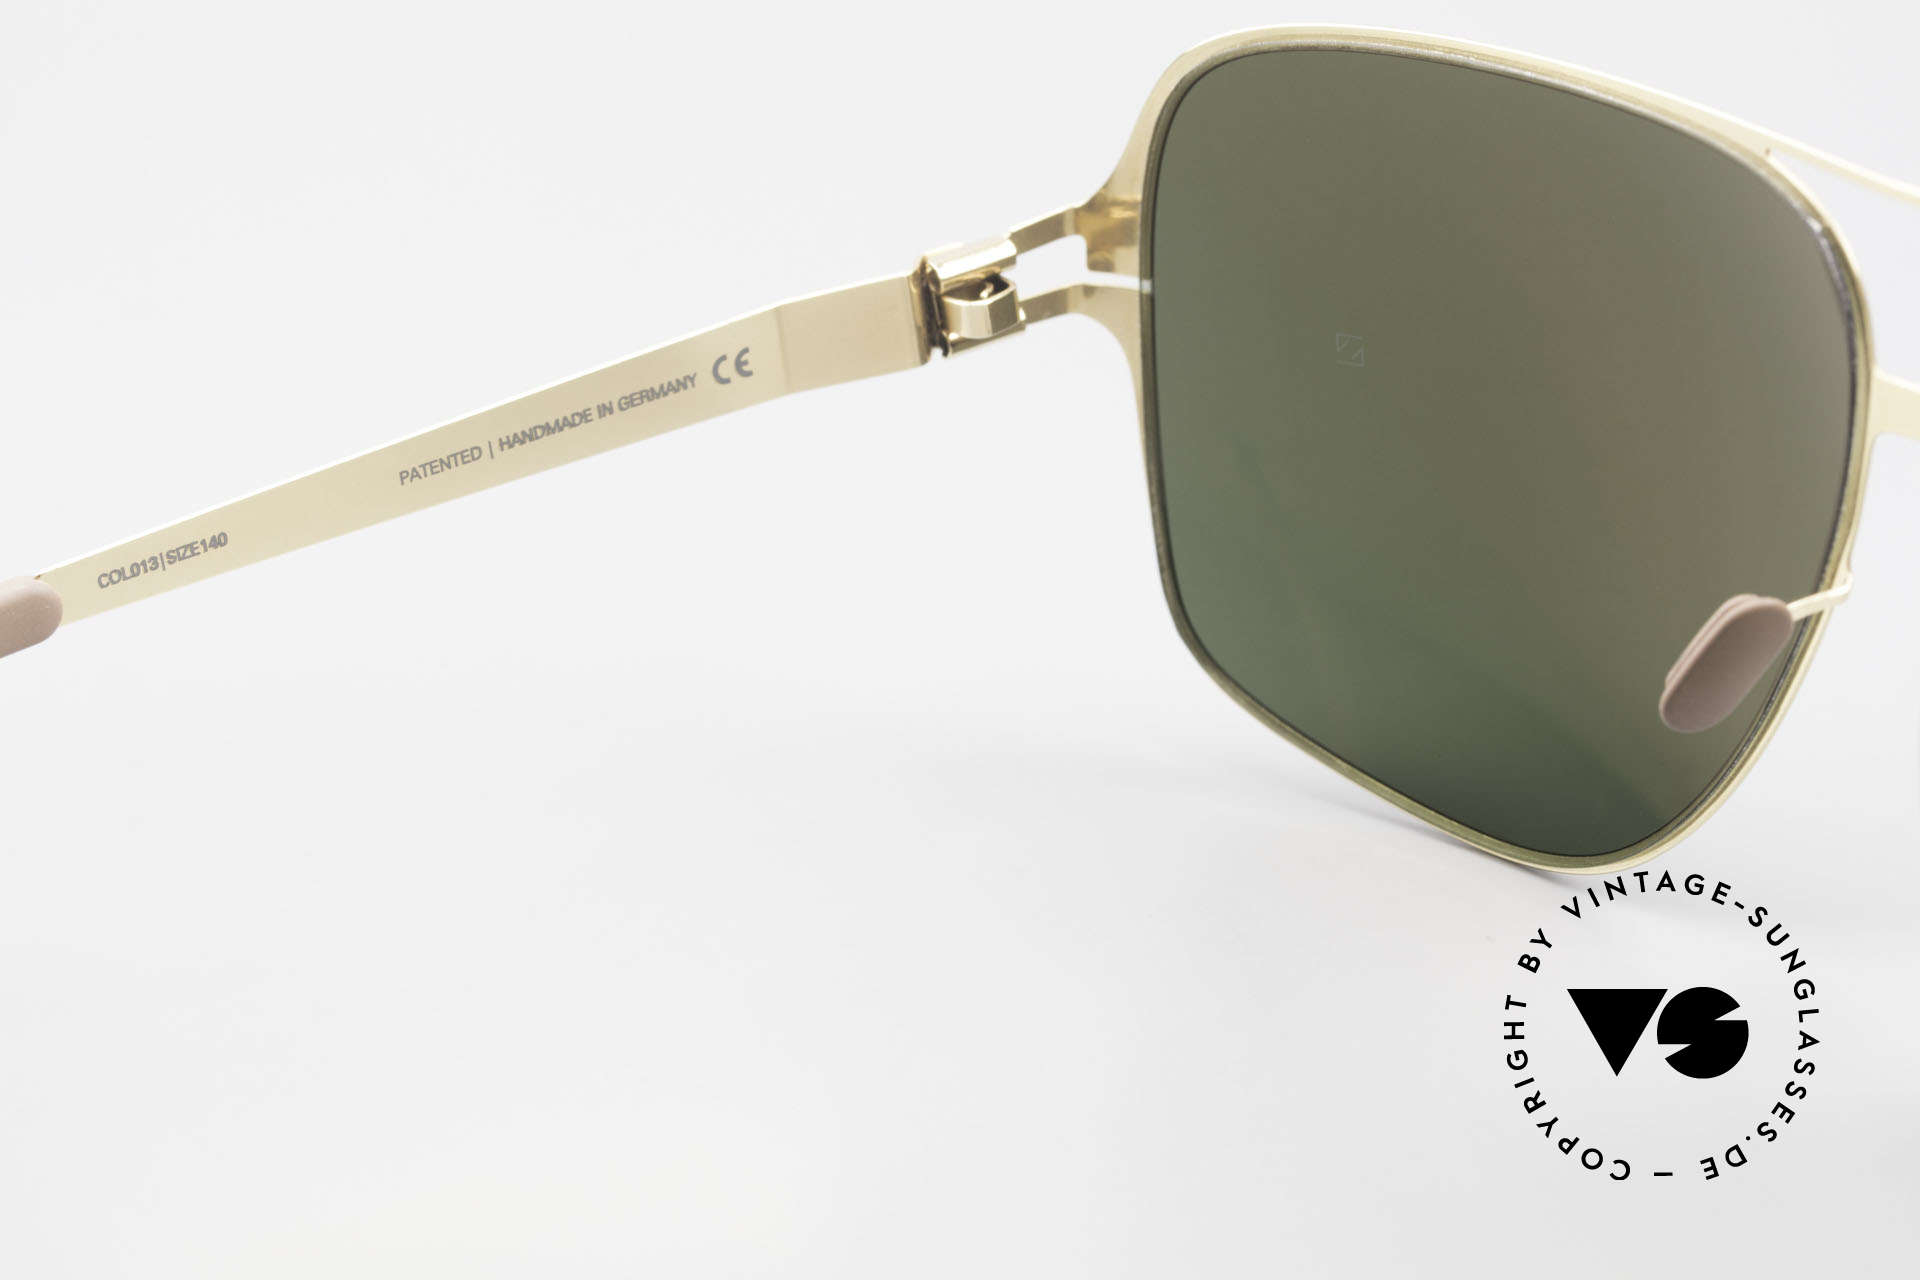 Mykita Cassius Lenny Kravitz XXL Sunglasses, worn by Lenny Kravitz (rare and in high demand, today), Made for Men